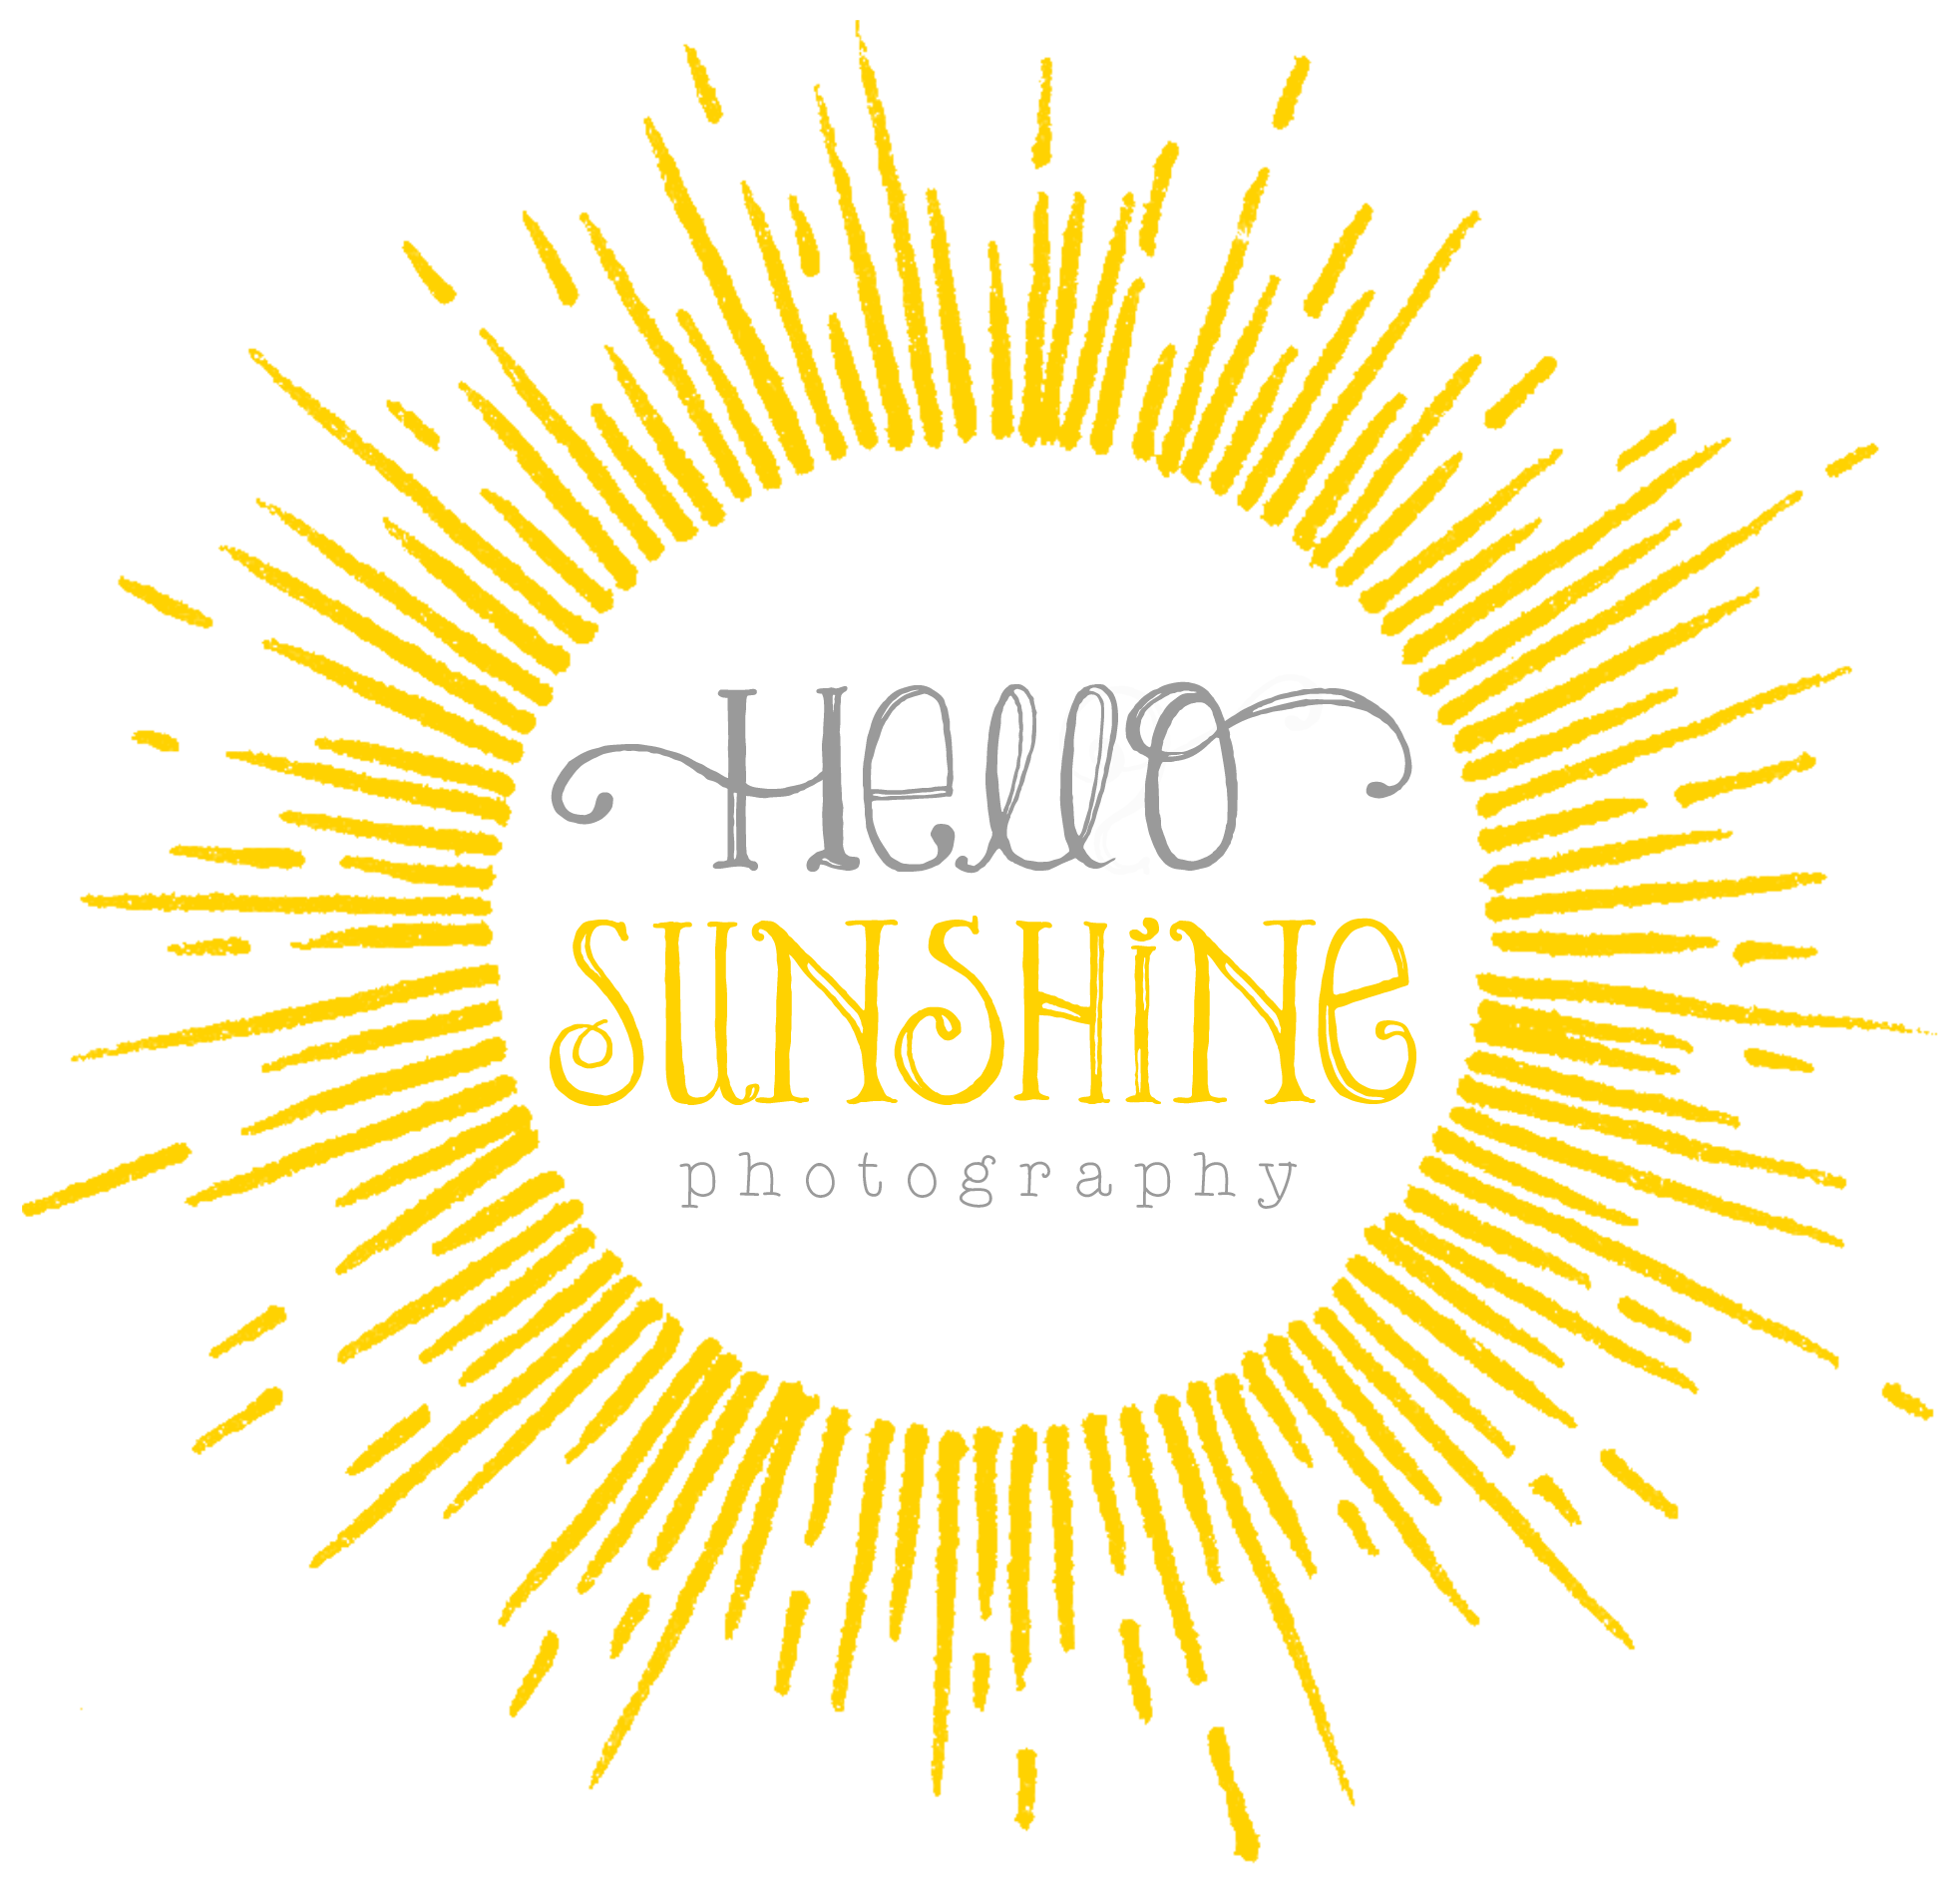 Hello sunshine photography logo. Sunny clipart shutter shades